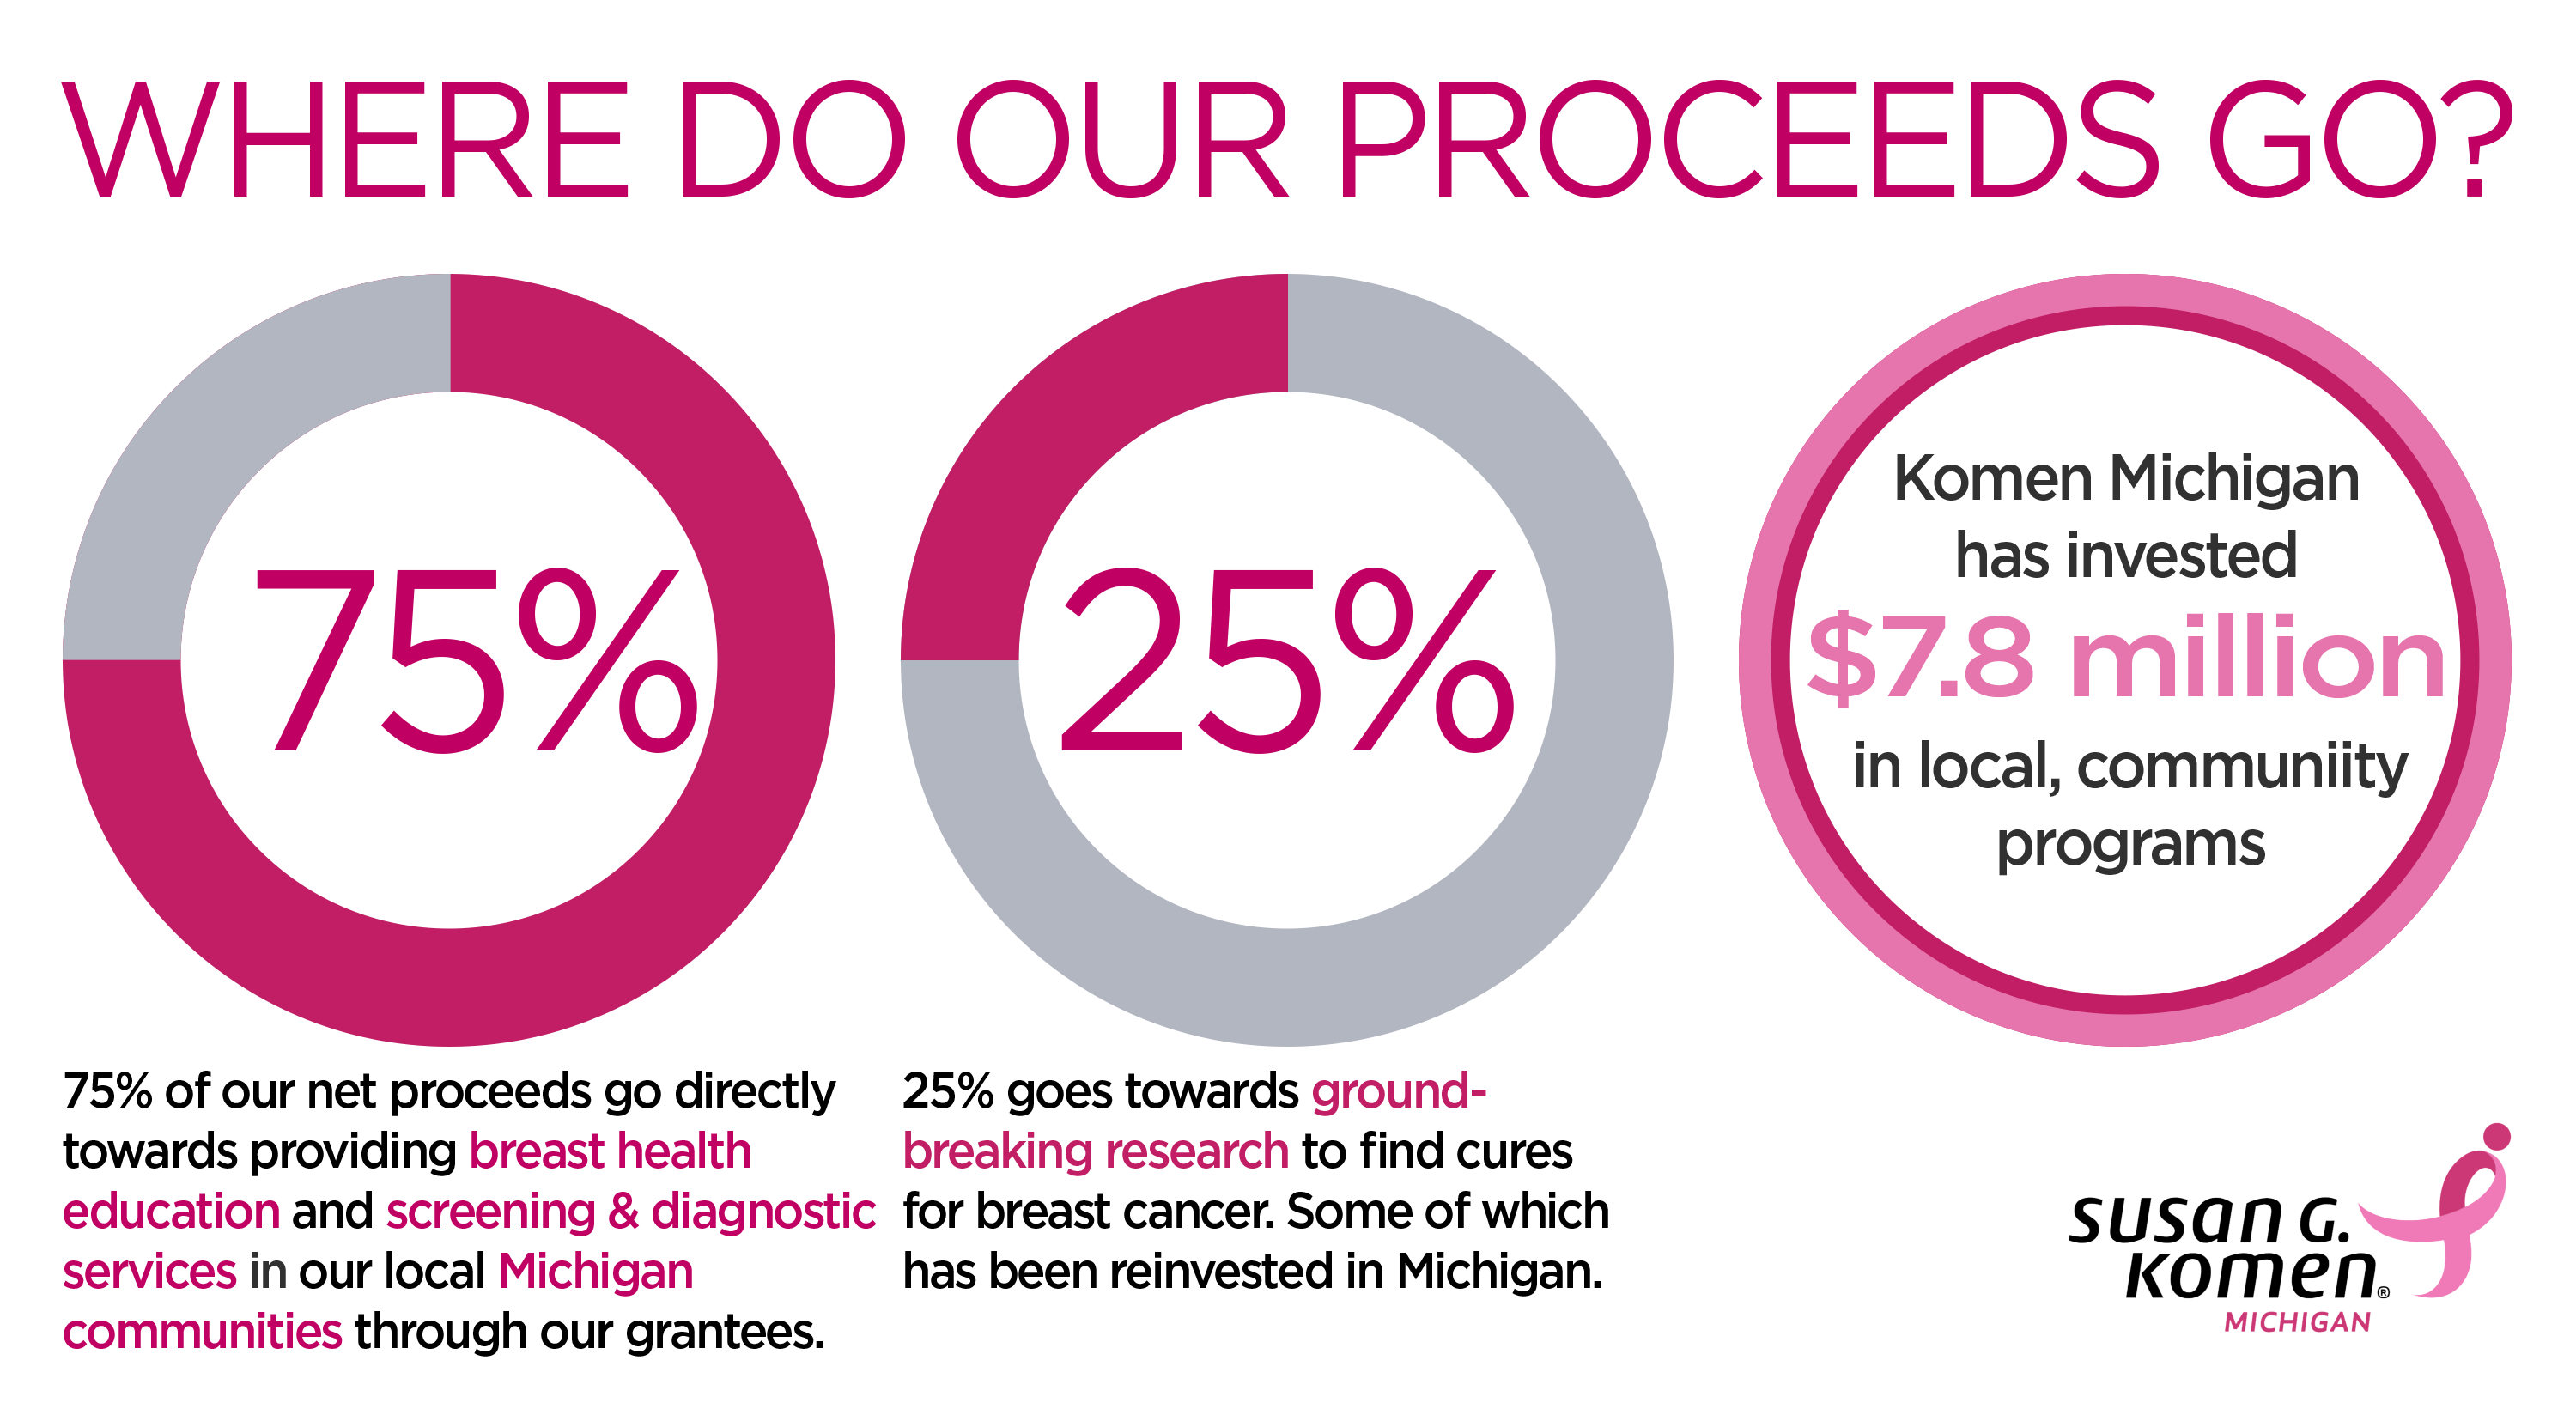 You know that National Breast Cancer Awareness Month is in October. You know that pink ribbons are for breast cancer. But do you know where your donations go when you give to Komen Michigan? Do you know if mammograms cause cancer? If not, read on for a few of the myths we've BUSTED with the truth.